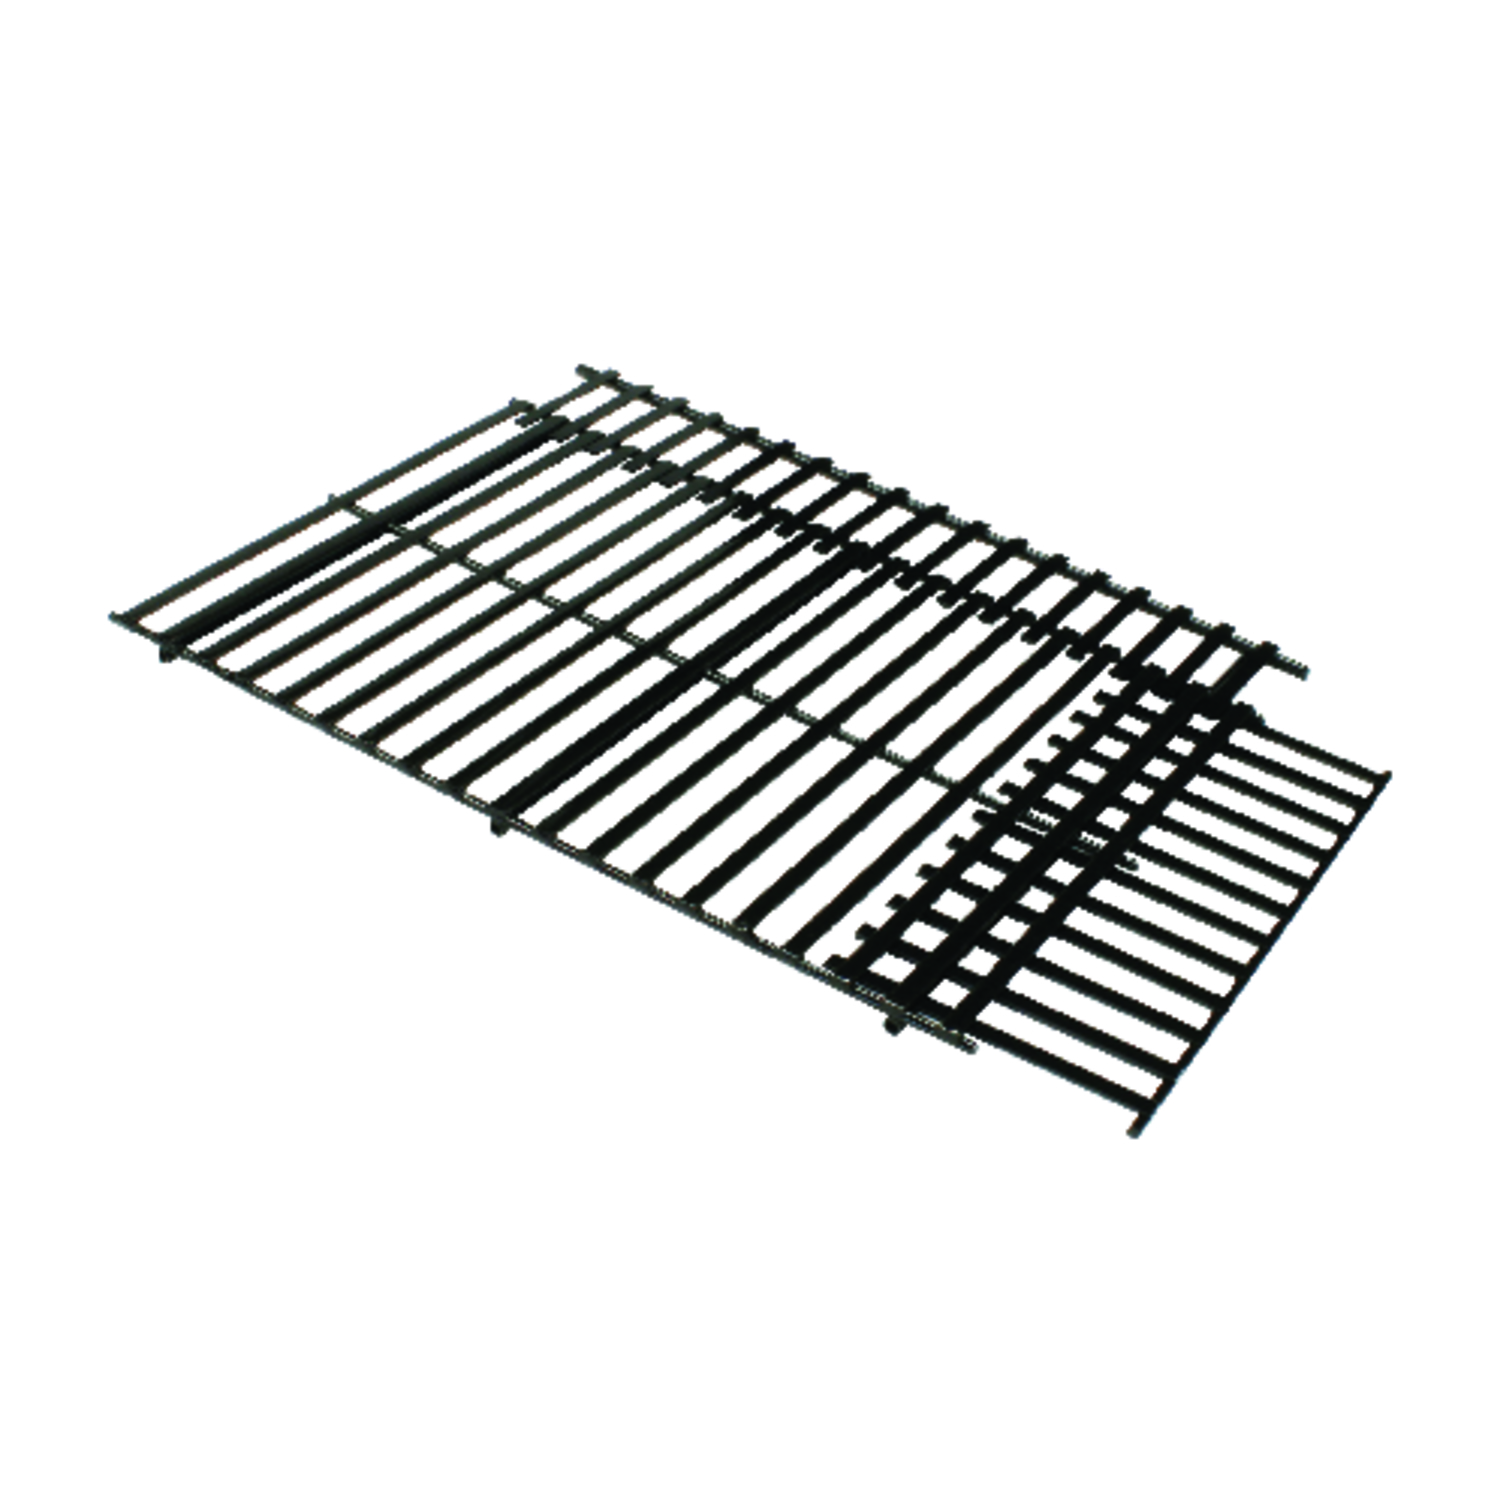 Grill Mark  Cast Iron/Porcelain  Grill Cooking Grate  14.3 in. L x 22 in. W x 0.8 in. H